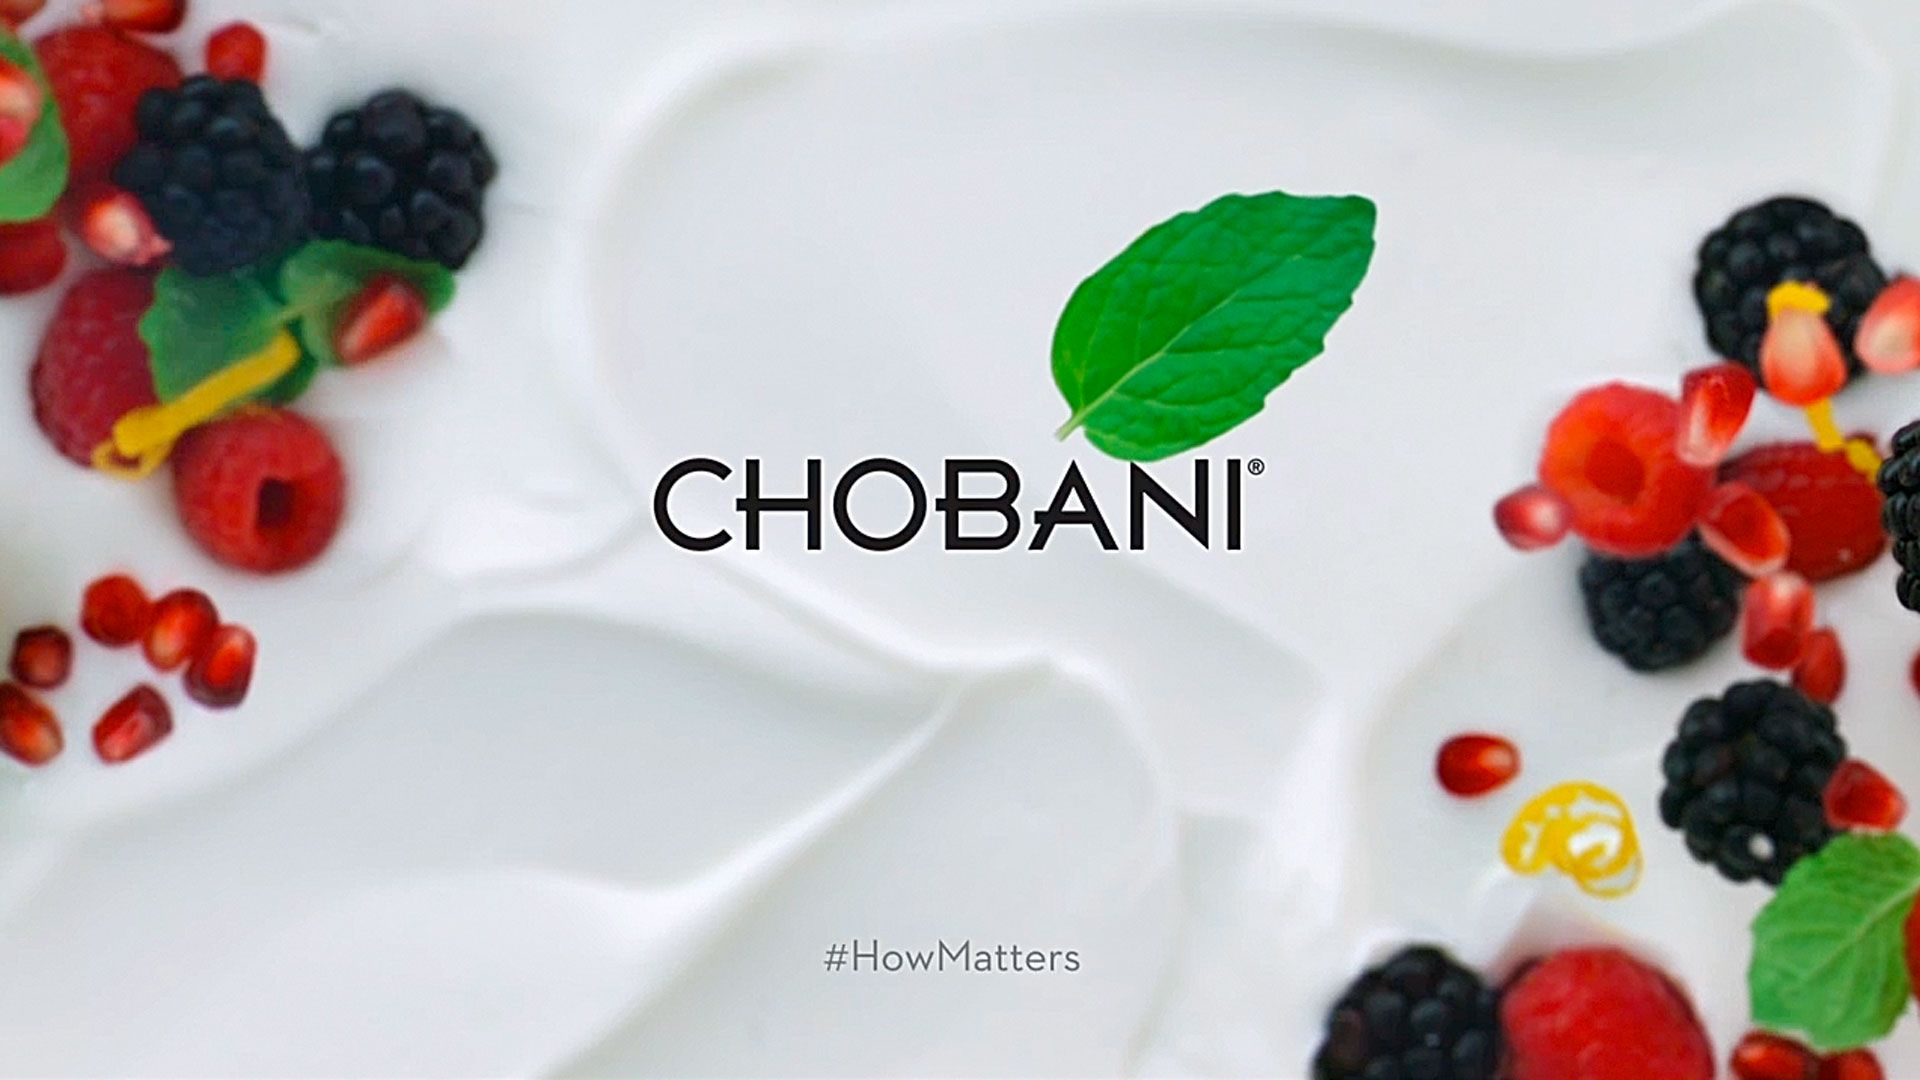 Toucan Advertising New Orleans Agency American Marketing Association AMA Chobani.jpg